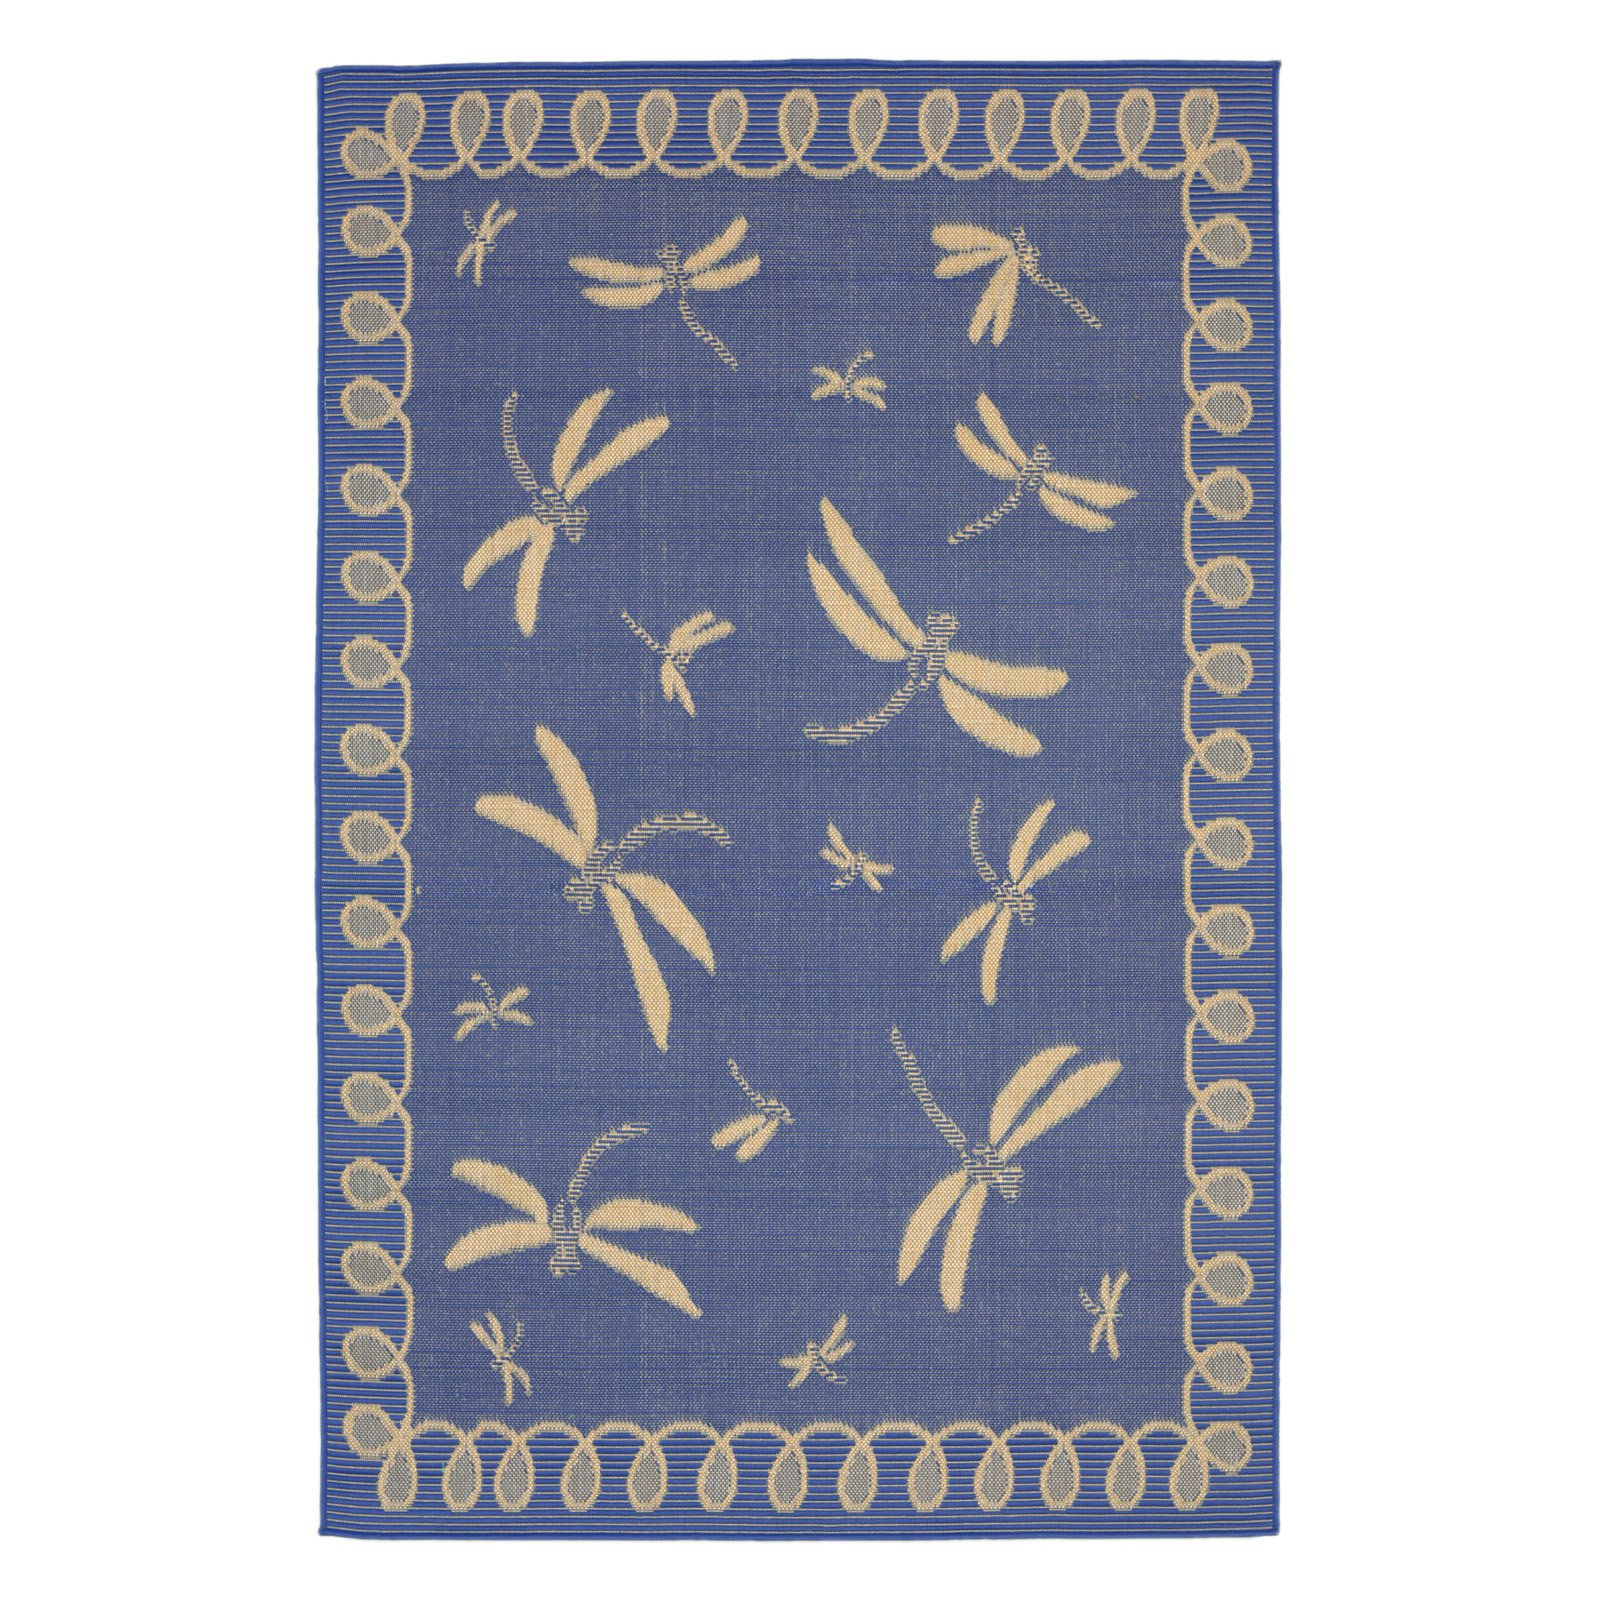 Liora Manne Terrace 1791/33 Dragonfly Marine Area Rug 7 Feet 10 Inches  Rd